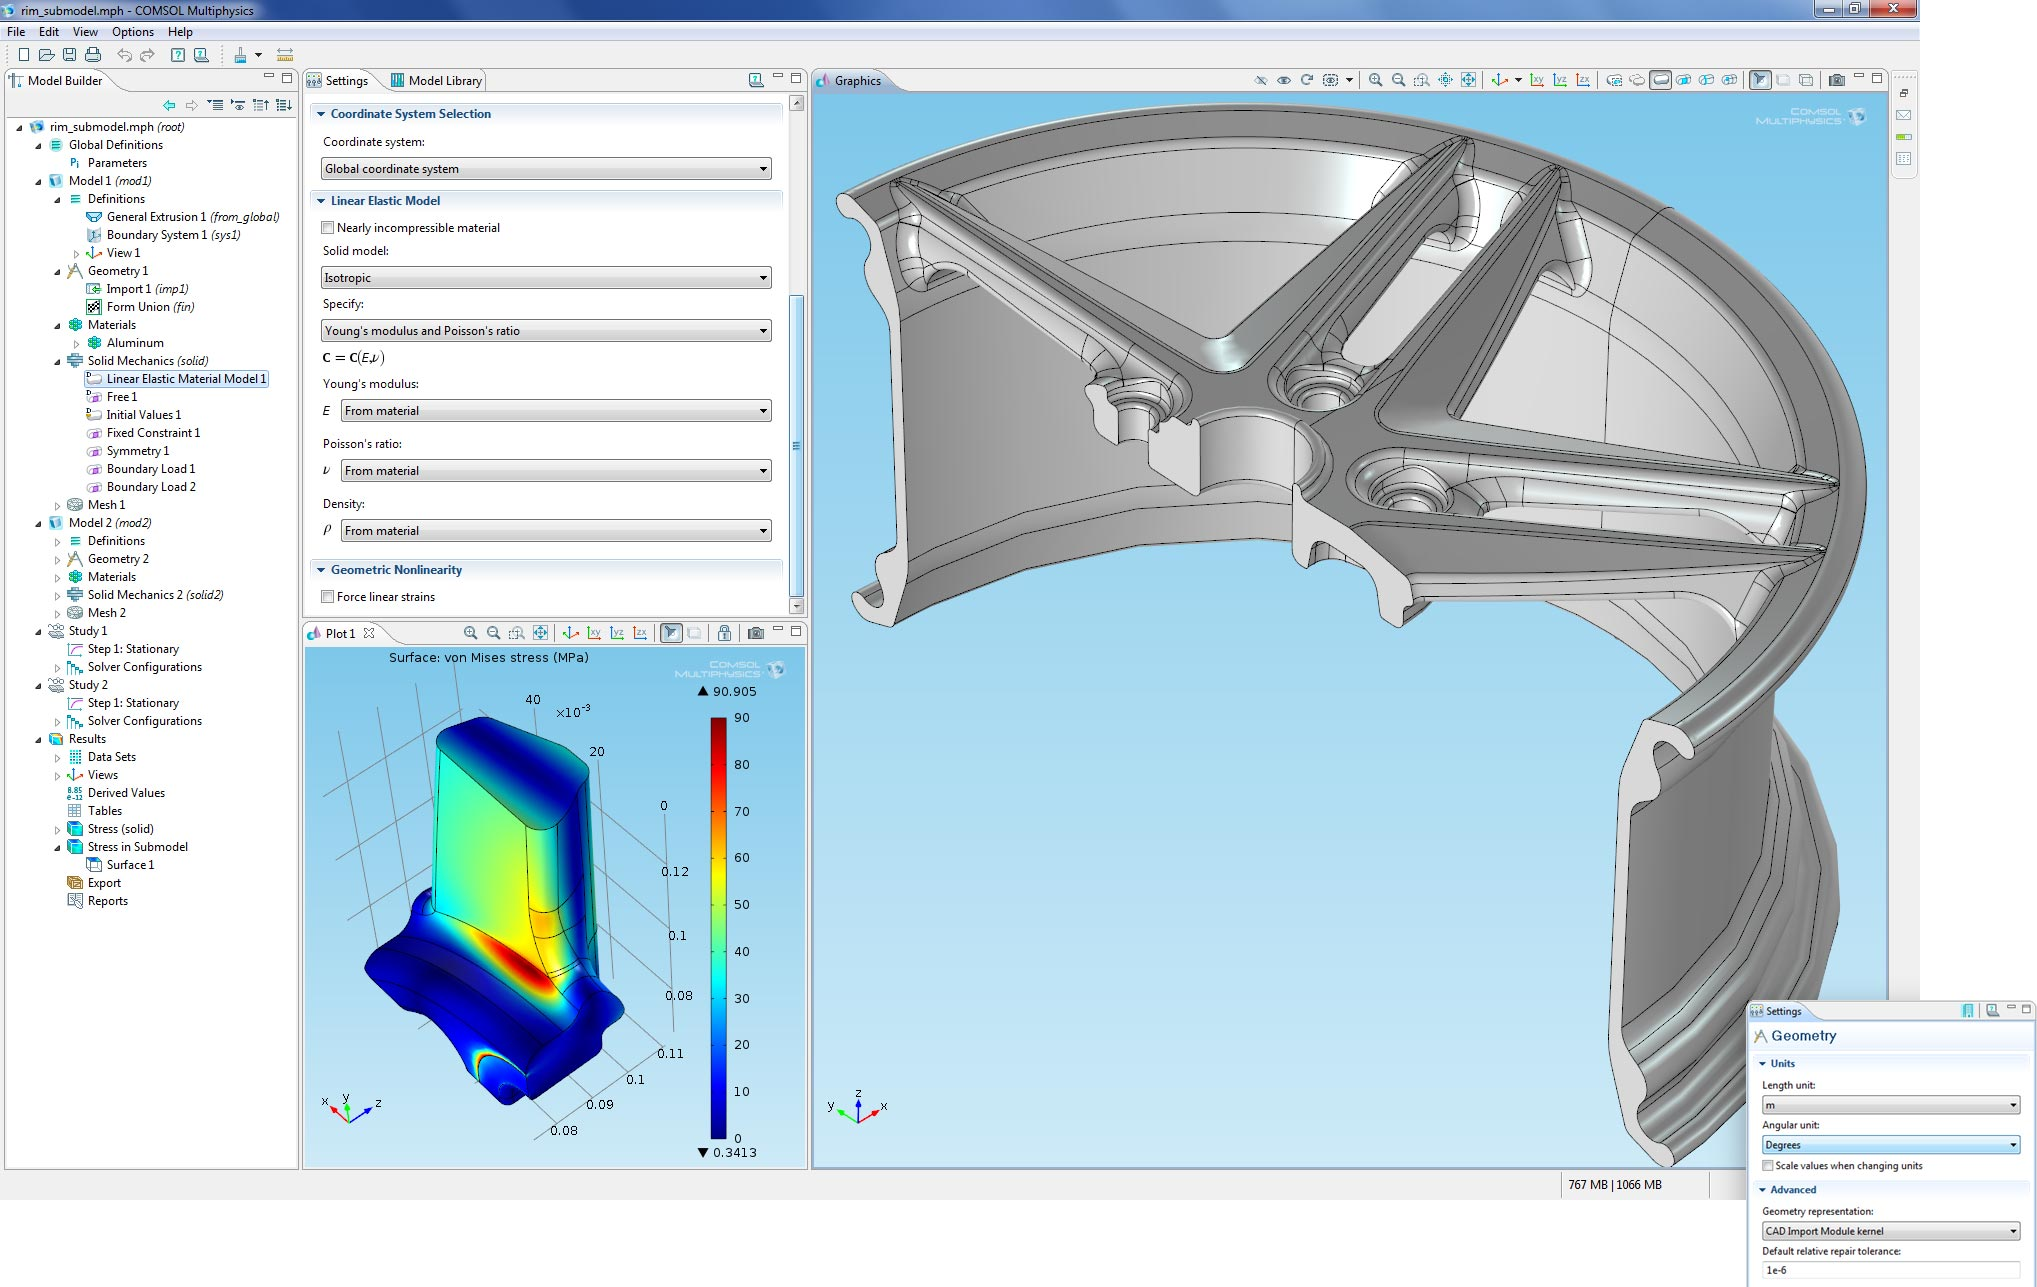 Image Gallery : COMSOL Multiphysics Version 4 2a